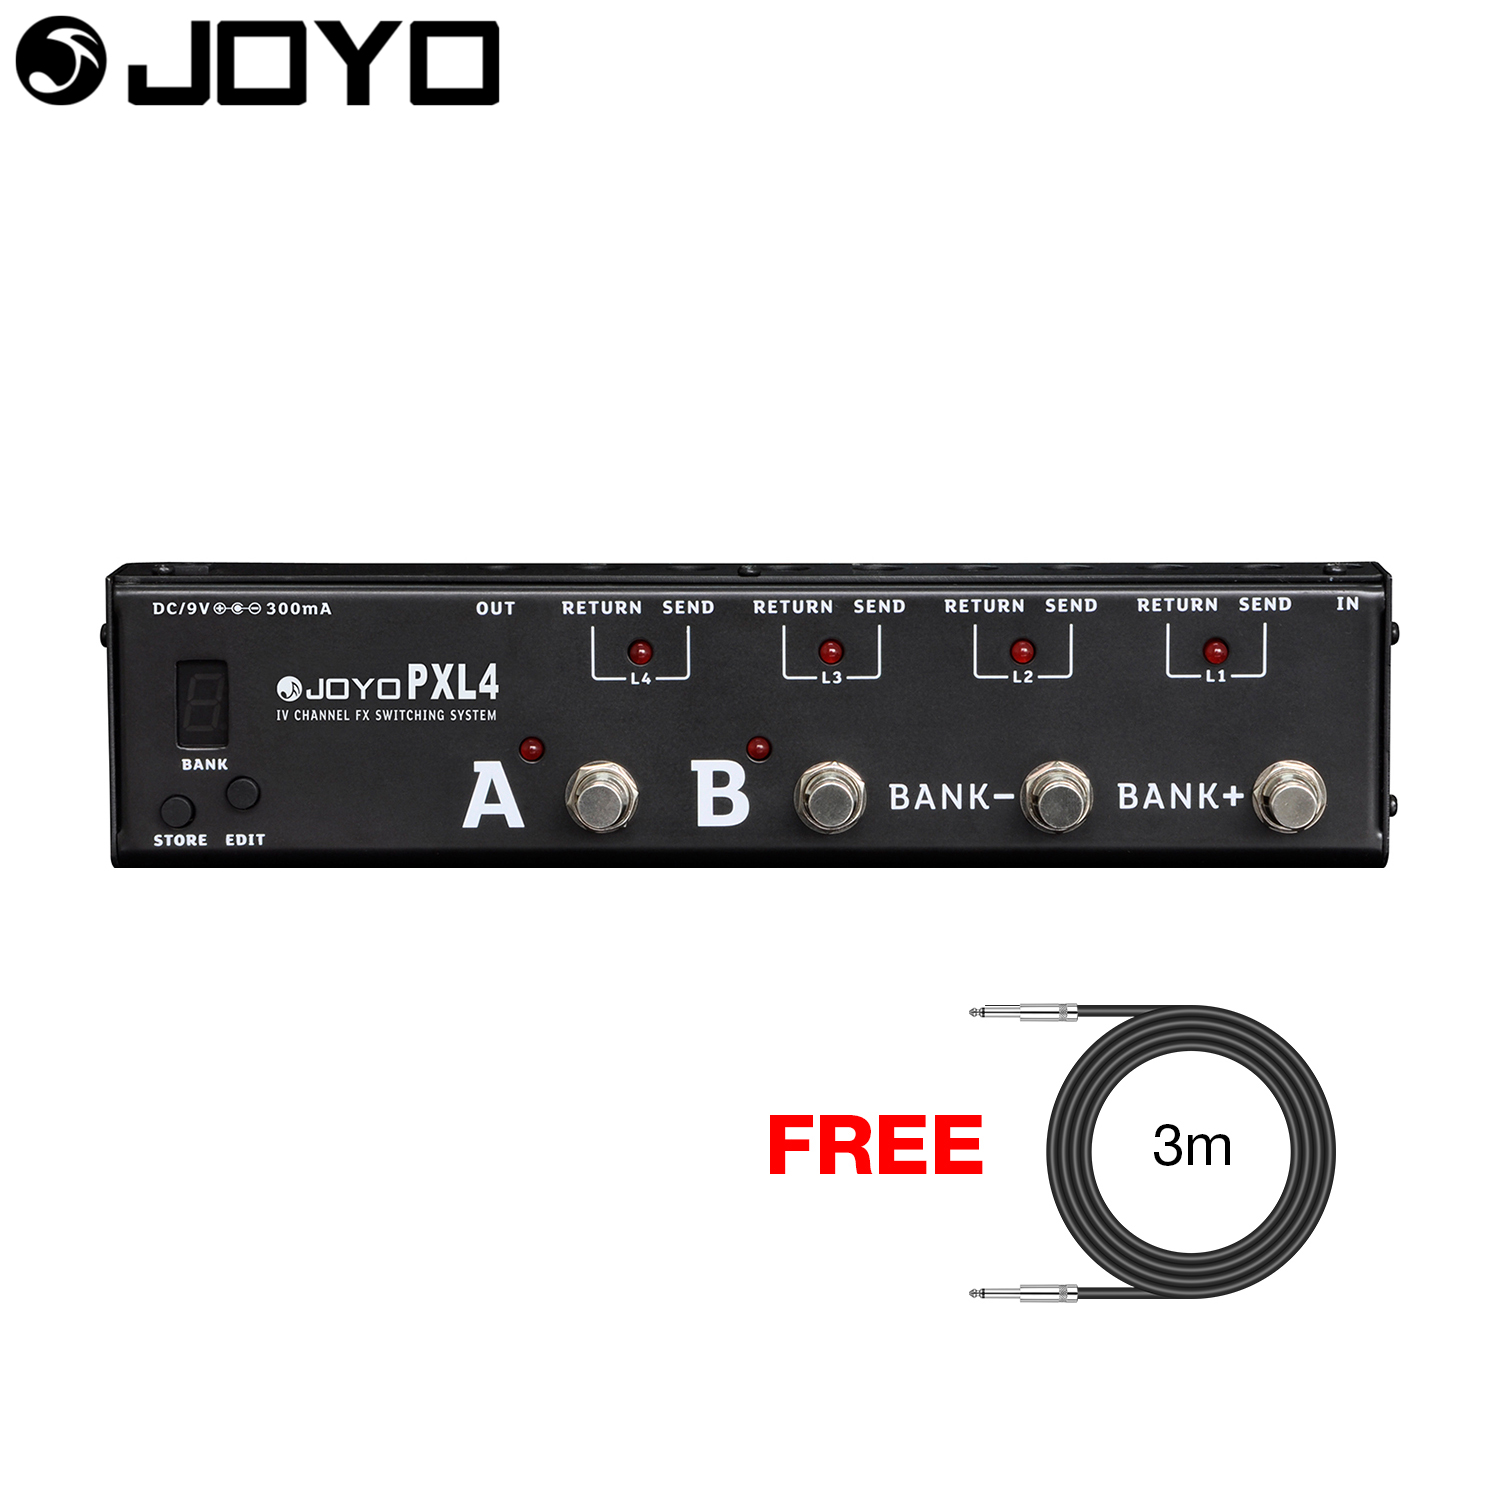 JOYO Multi-effects Guitar Effect Pedal Switcher Looper Programmable 4 Loop True Bypass PXL-4 with Free 3m Cable mooer ensemble queen bass chorus effect pedal mini guitar effects true bypass with free connector and footswitch topper